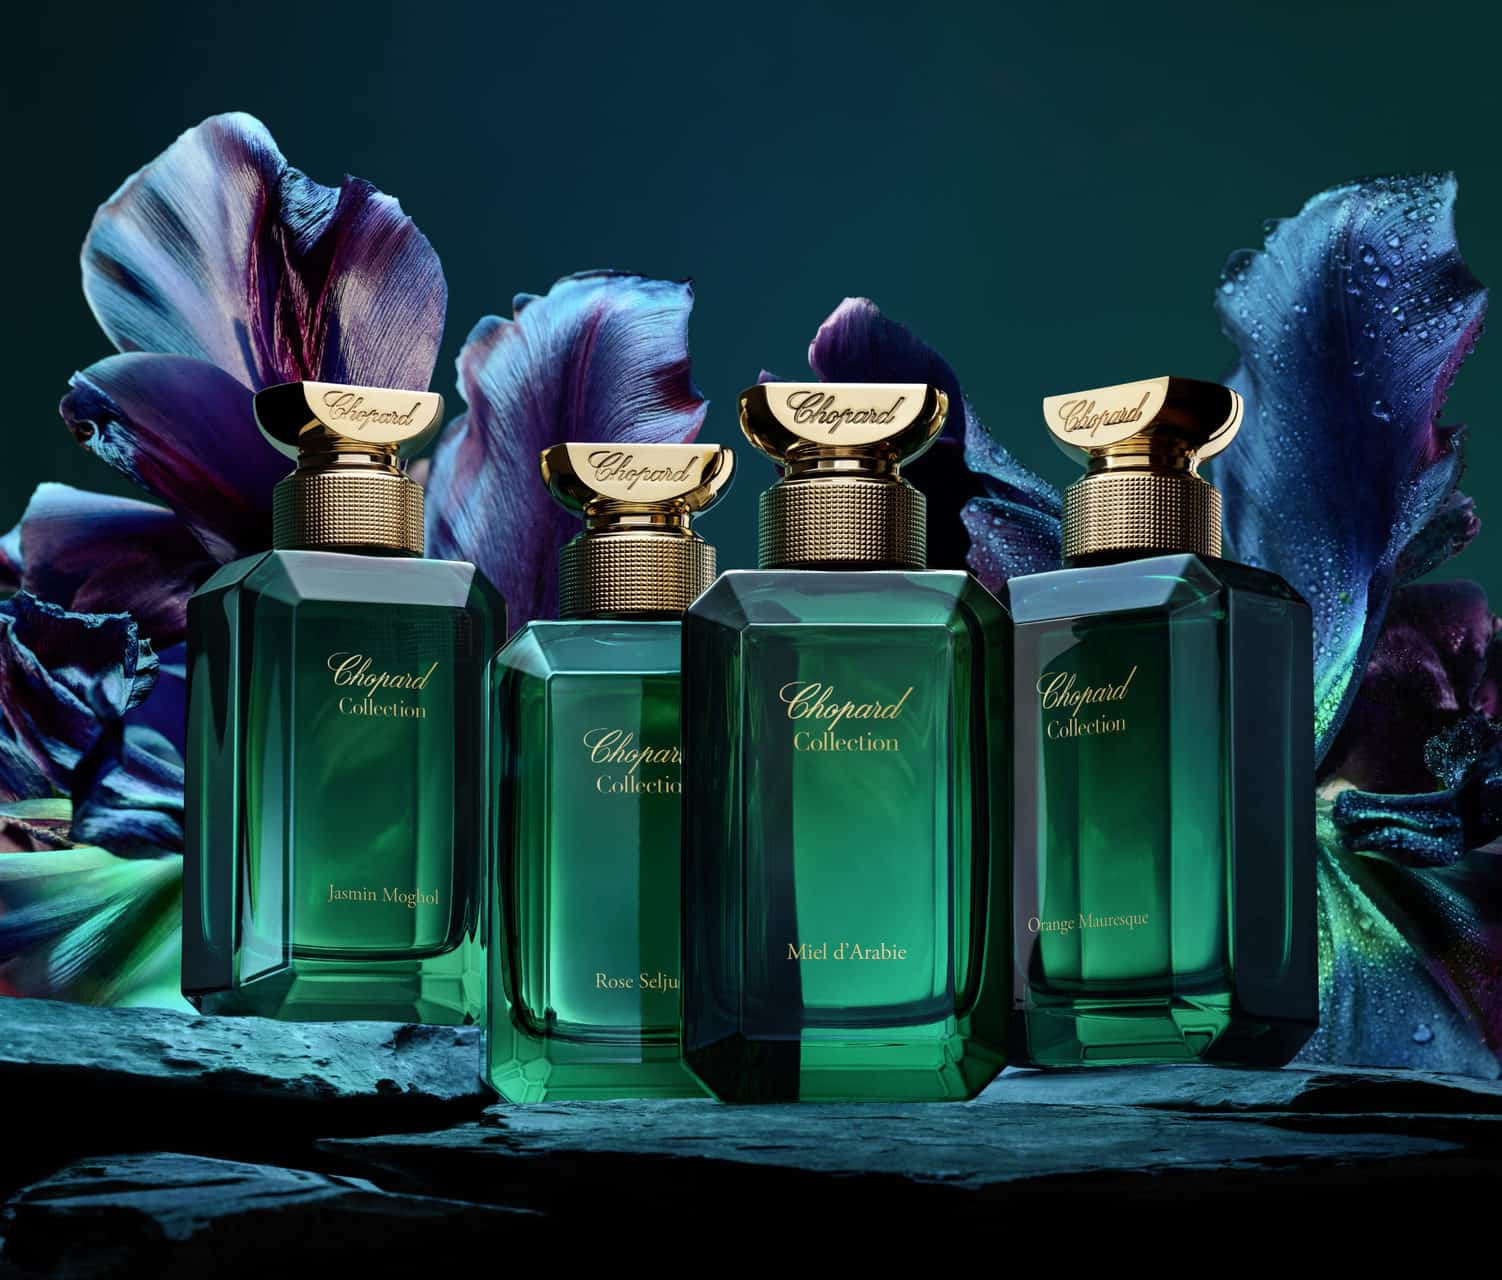 The Chopard New High Perfumery Collection